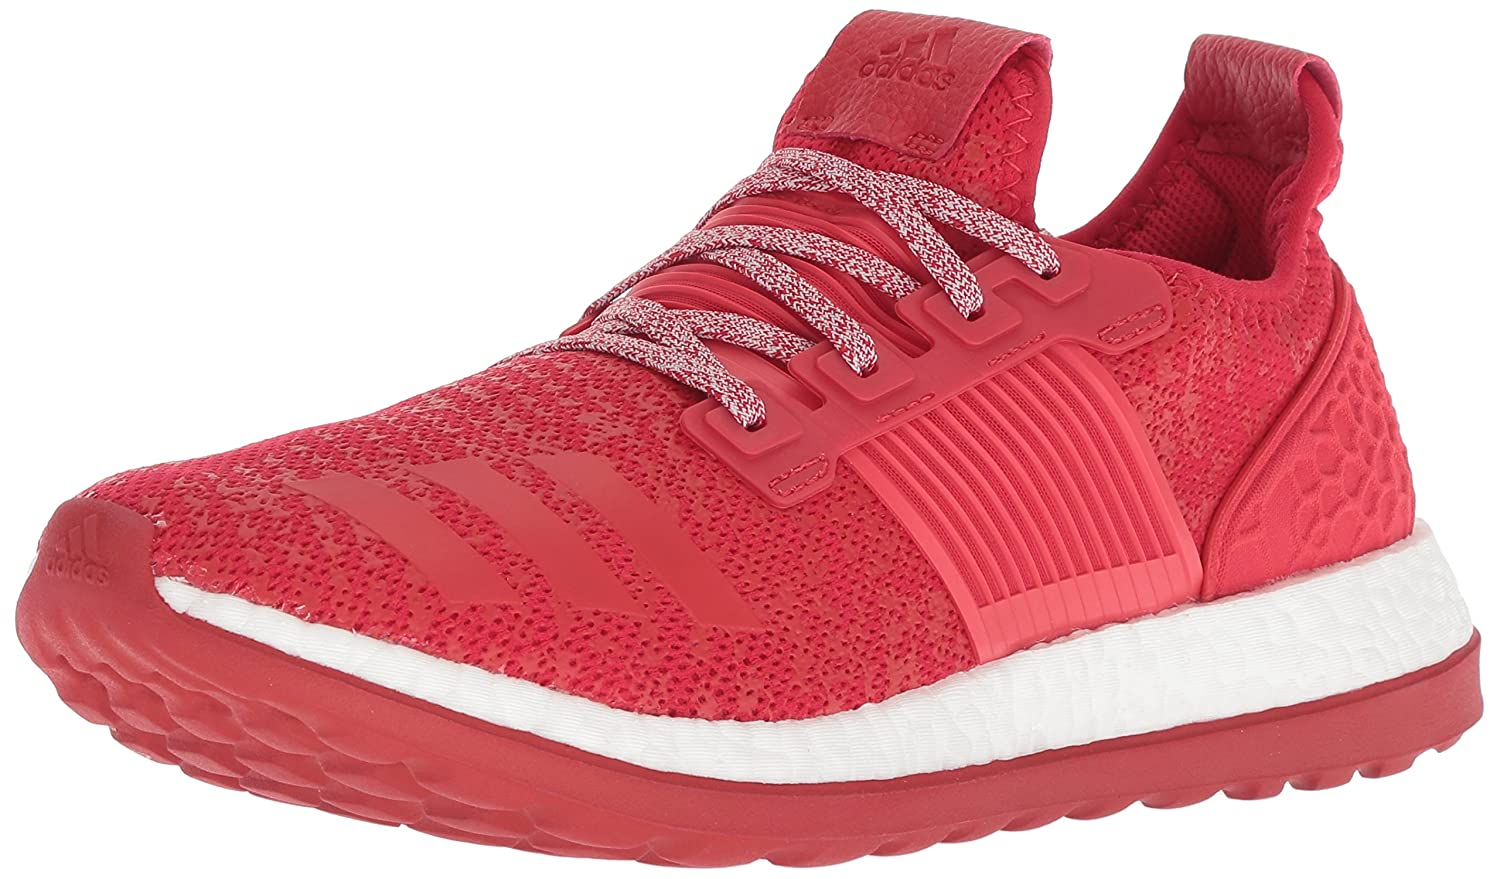 adidas Performance Men's Pureboost ZG Running Shoe B01E0YFU5G 16 D(M) US|Scarlet/Light Scarlet/White